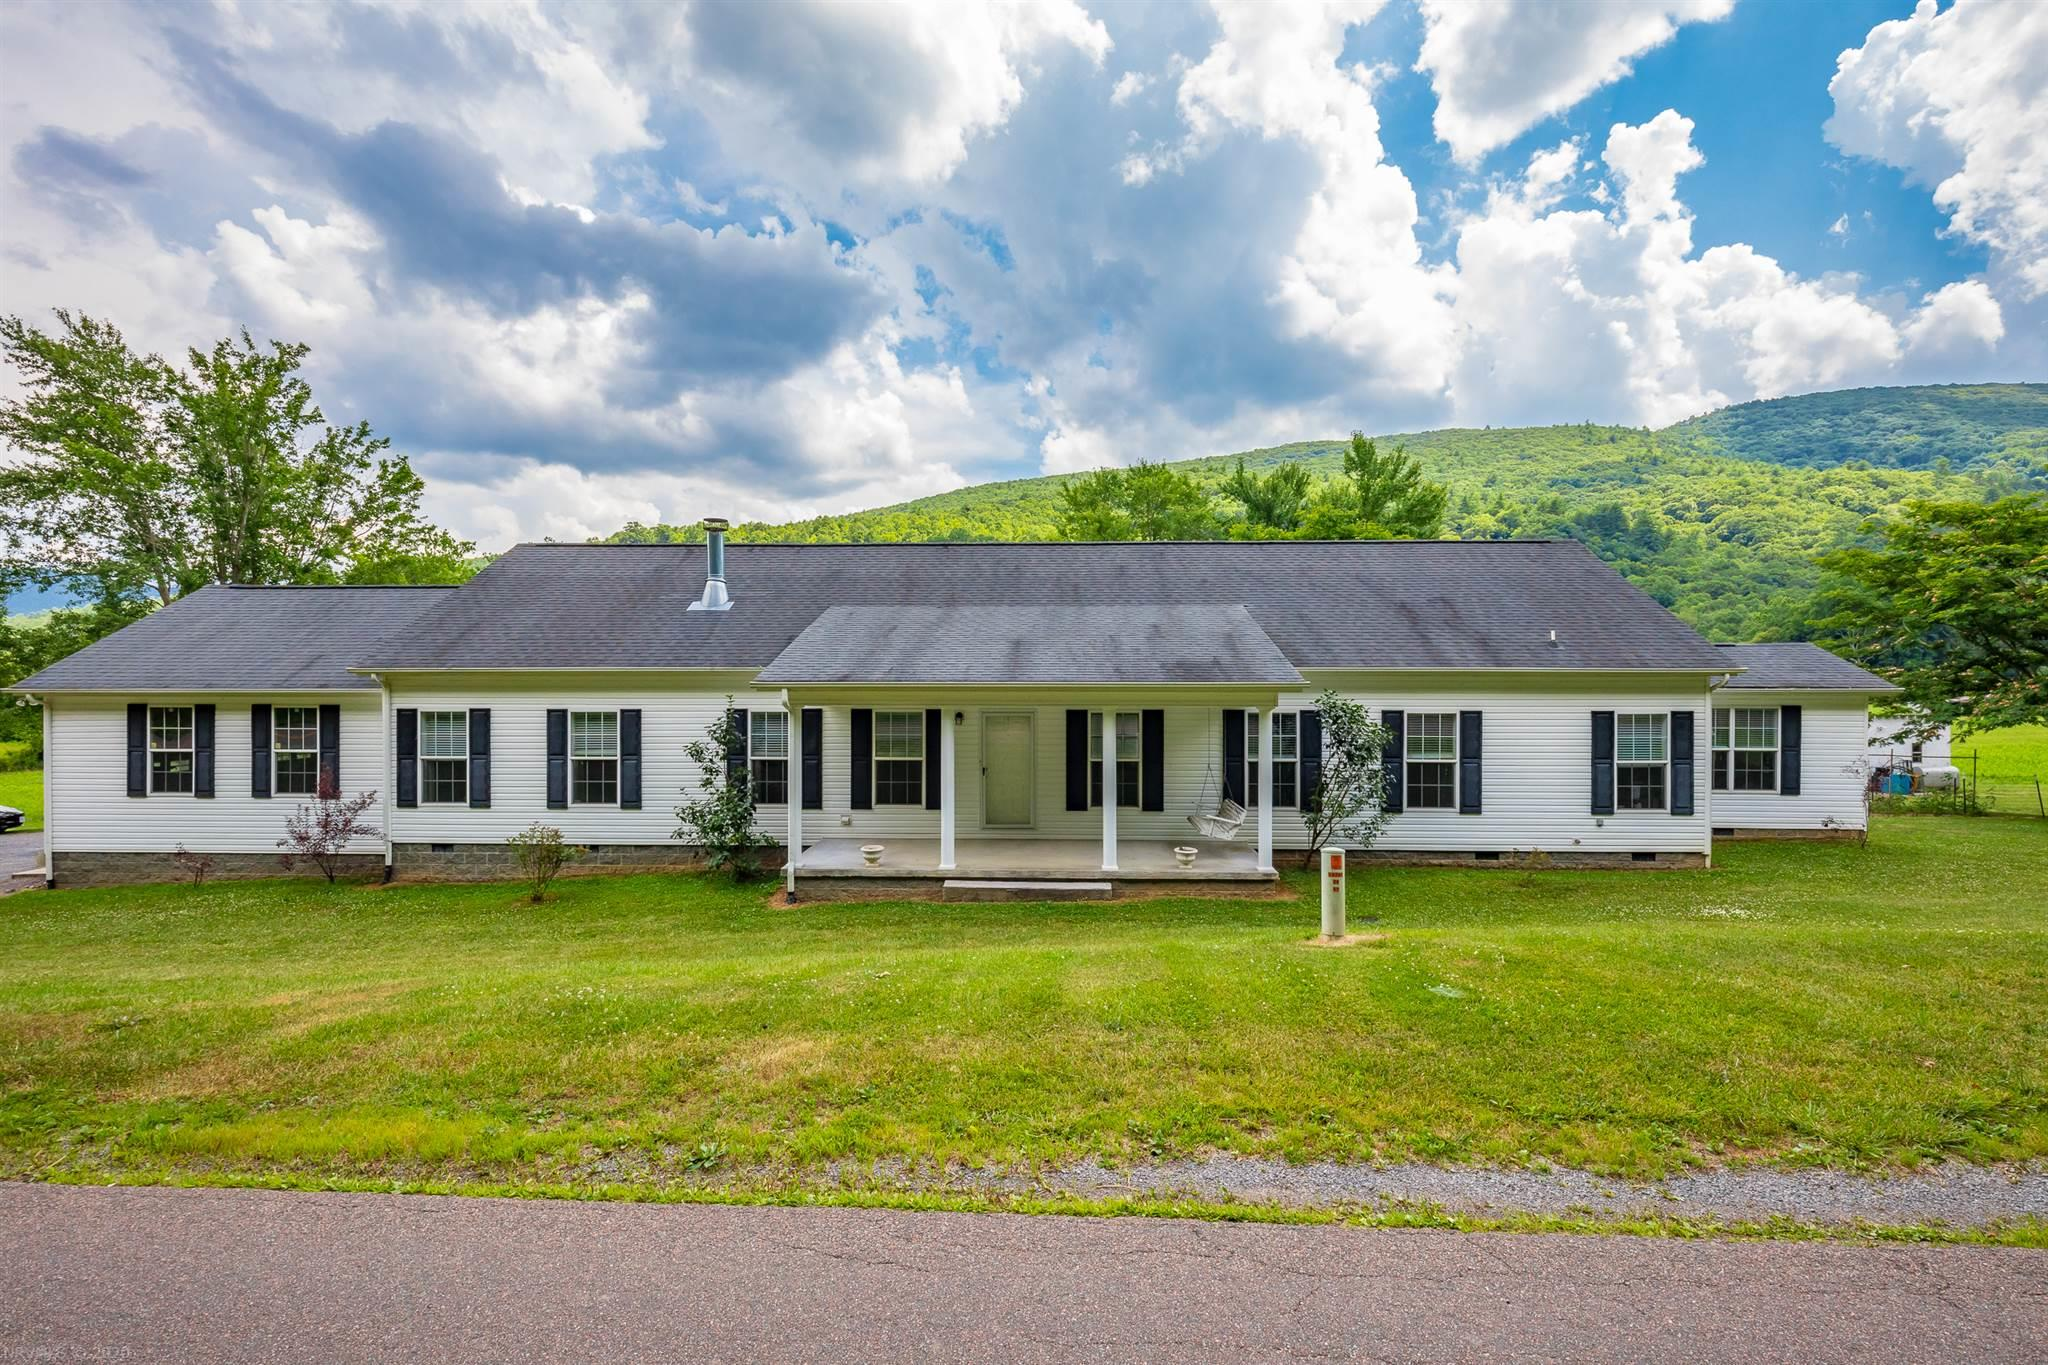 Gorgeous 3 BR 2 BA home on +/-28 acres in Bland County, VA. This property borders the Jefferson National Forest and Wolf Creek flows right through the middle of it. Great for horses, hunting, ATV riding, and more. The home was built in 2009. Very large kitchen with plenty of cabinets, a double oven, pantry, and a commercial-grade refrigerator. Entertain in front of the beautiful fireplace in the living room, which could be converted to gas if desired. The Master bedroom has its own bath and oversized walk-in closet. There is an office that could be used as a fourth bedroom if desired. Two car attached garage could also be used as a workshop. Other features include a large laundry room, a beautiful sunroom with gas logs that overlook the land, and the mountains. security system. There is a retractable 16' electrical awning on the back deck. Enjoy the mountain views and the creek view from the rear deck. Also features a spring fed goldfish pond in the yard.